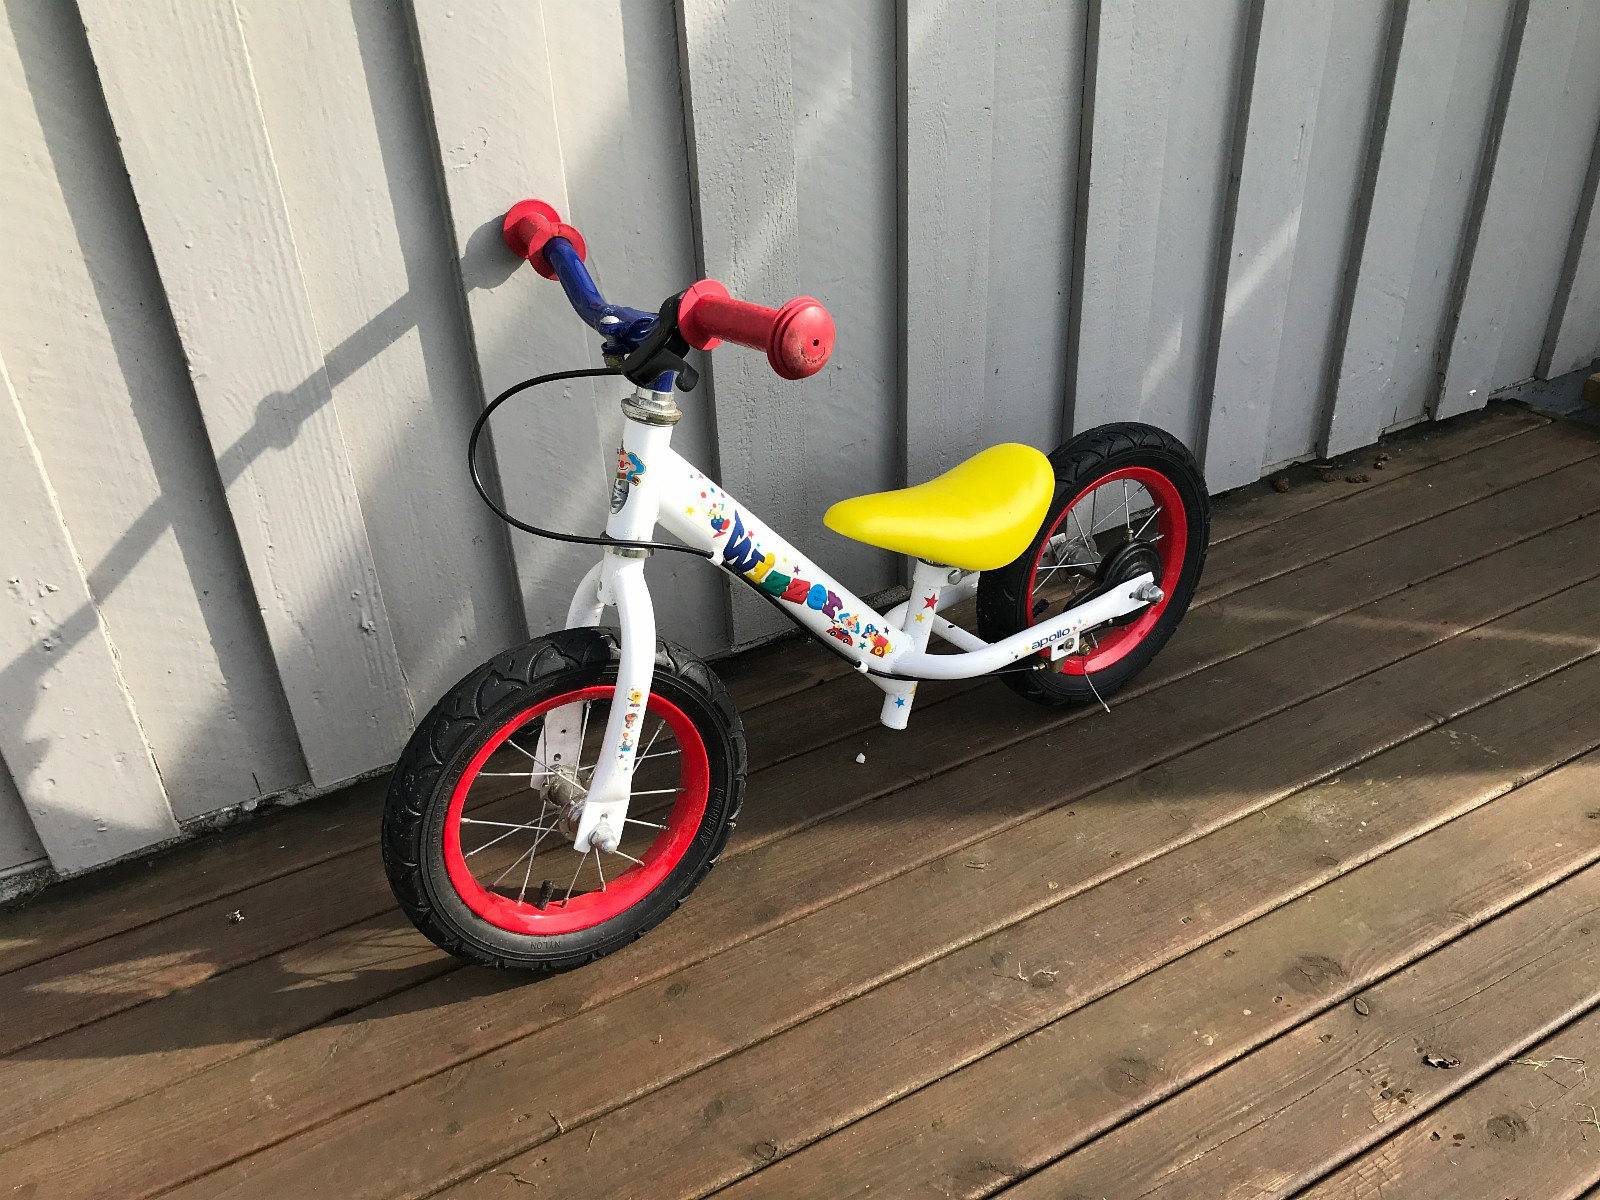 Balance bike with rubber tires and brake - Røyneberg  - Used balance bike for sale. Rubber tires and hand brake.